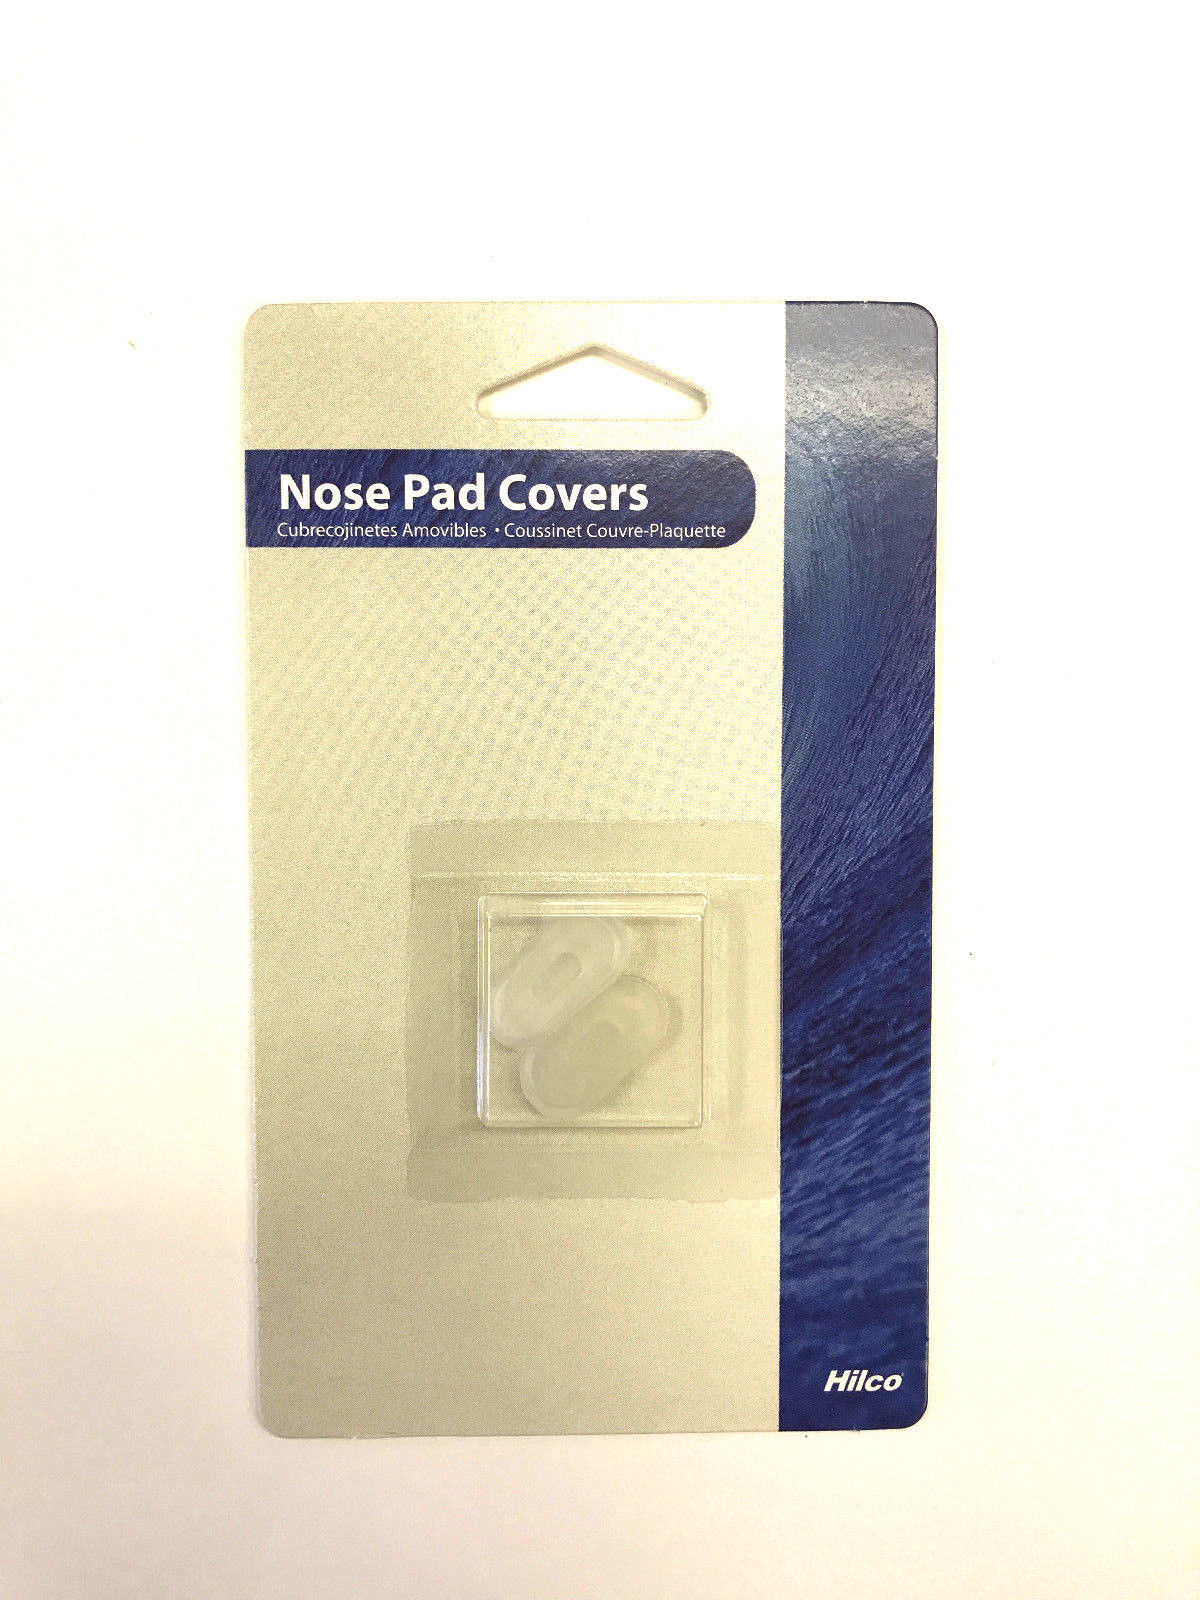 Nose Pad Covers Silicone Pads Eyewear Sunglass Comfort Soft Clear 19mm Slip On